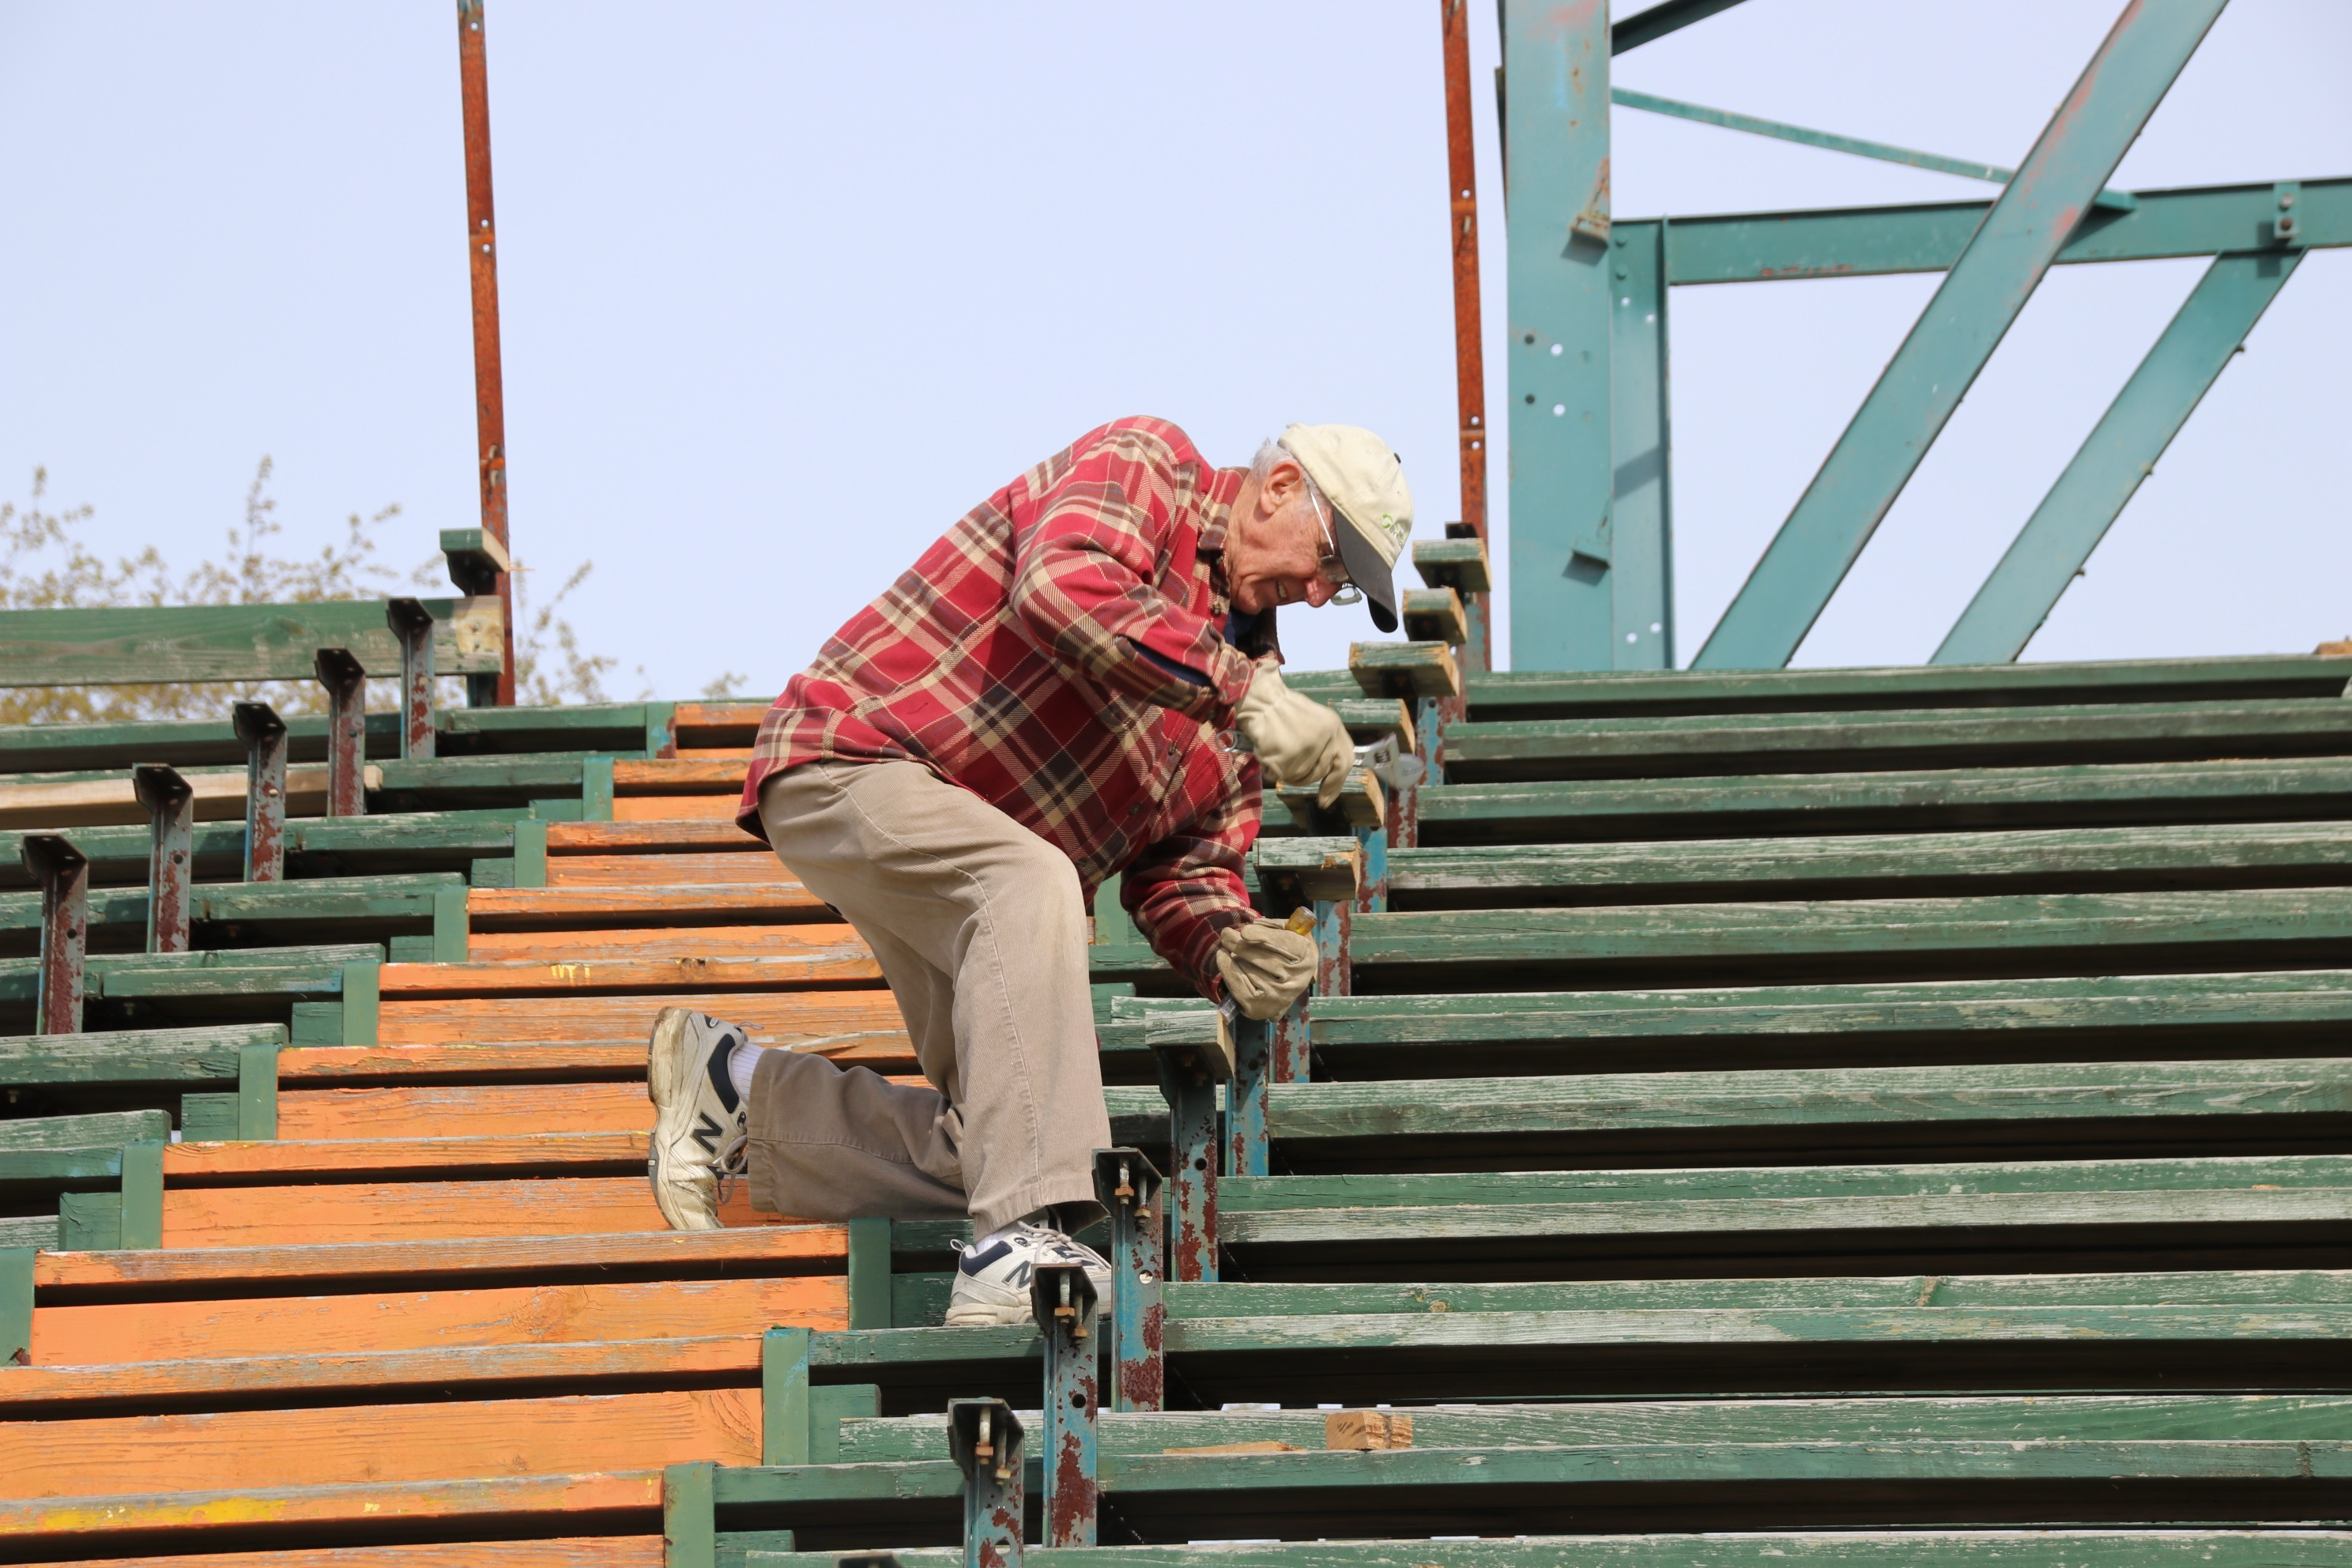 Phil Laverriere was among those doing his bit Saturday, helping dismantle the old bleachers at Waterhouse Field in Biddeford. TAMMY WELLS/Journal Tribune